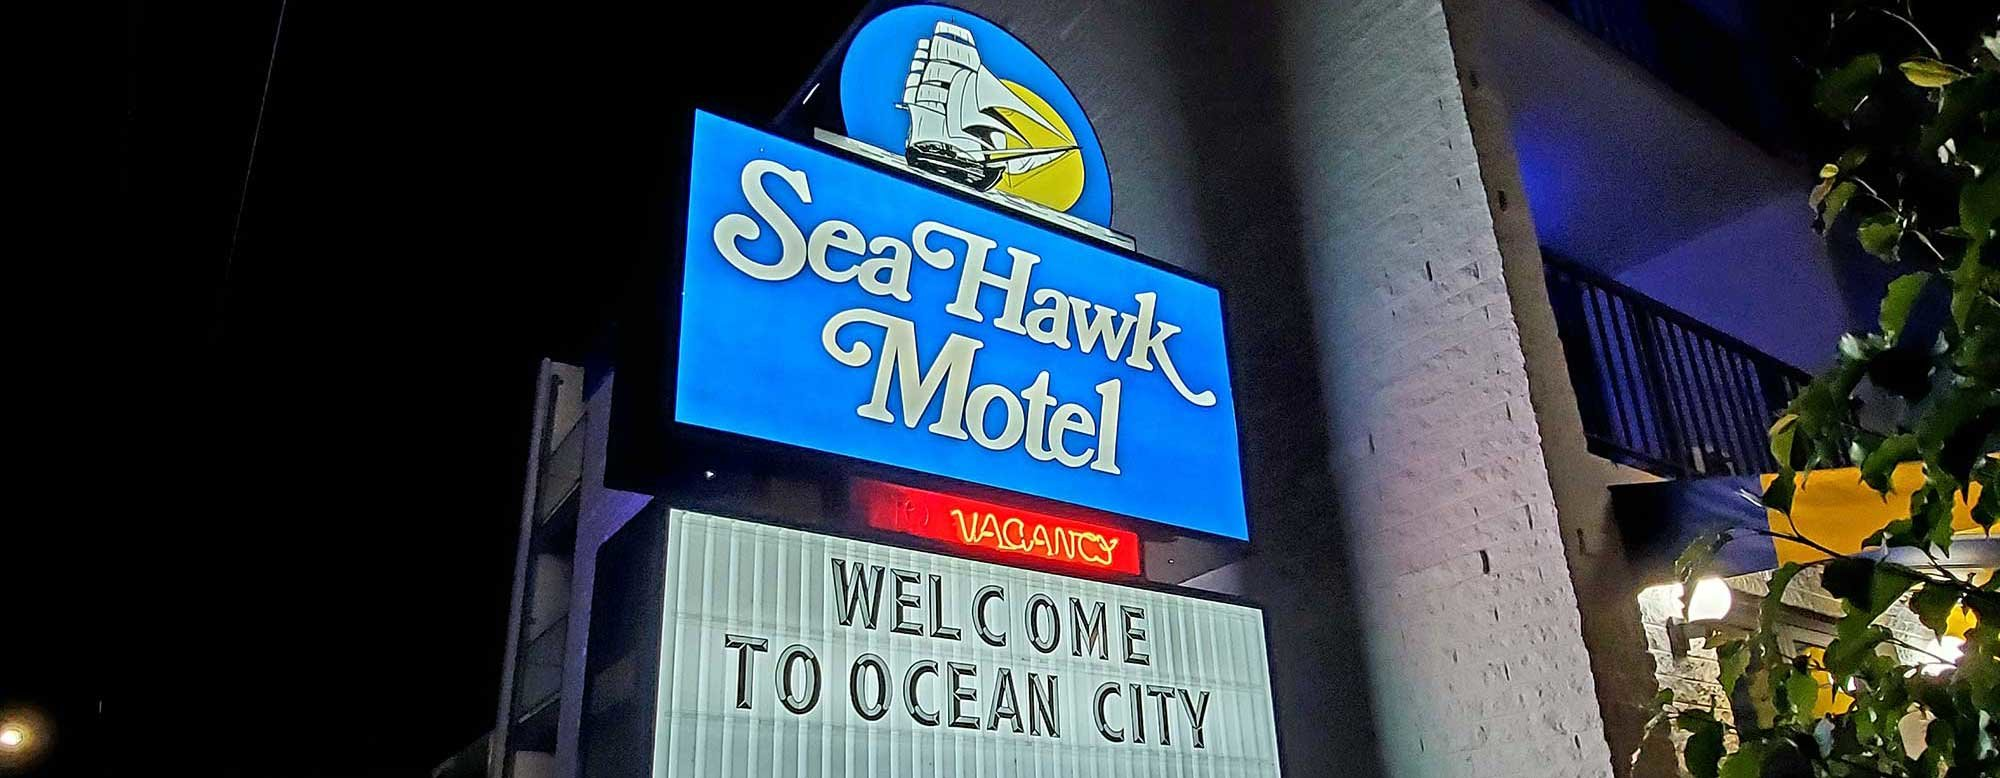 Sea Hawk motel sign lit in the evening